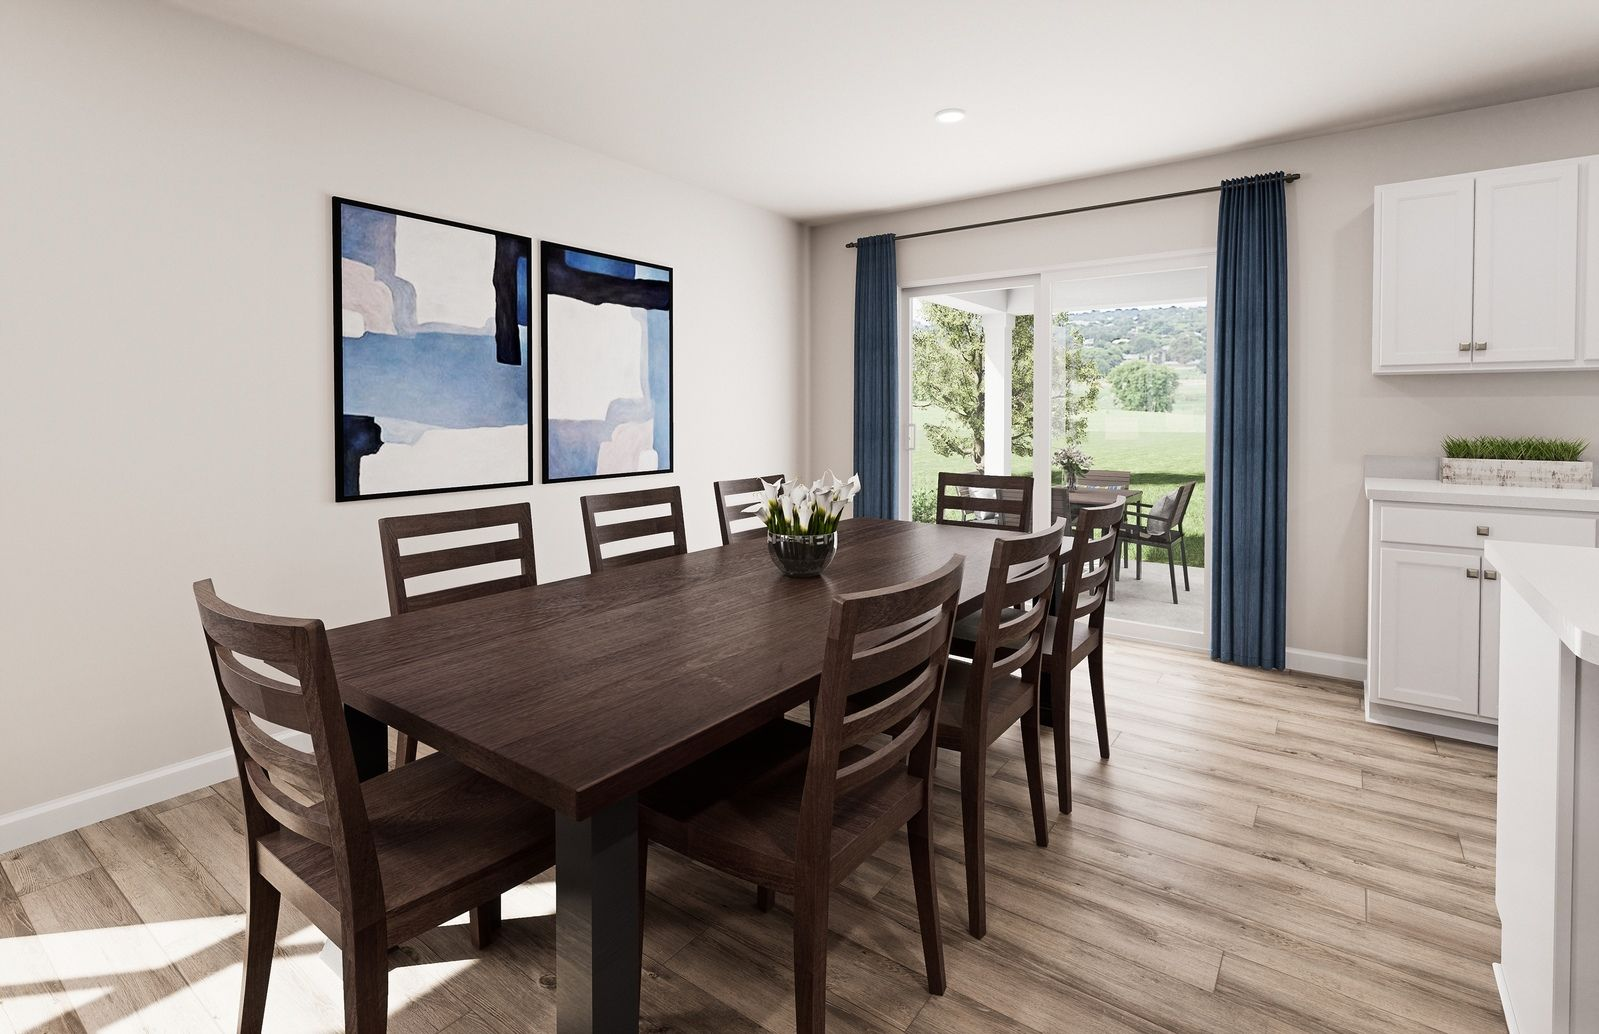 Living Area featured in the Eden Cay By Ryan Homes in Cumberland County, NJ